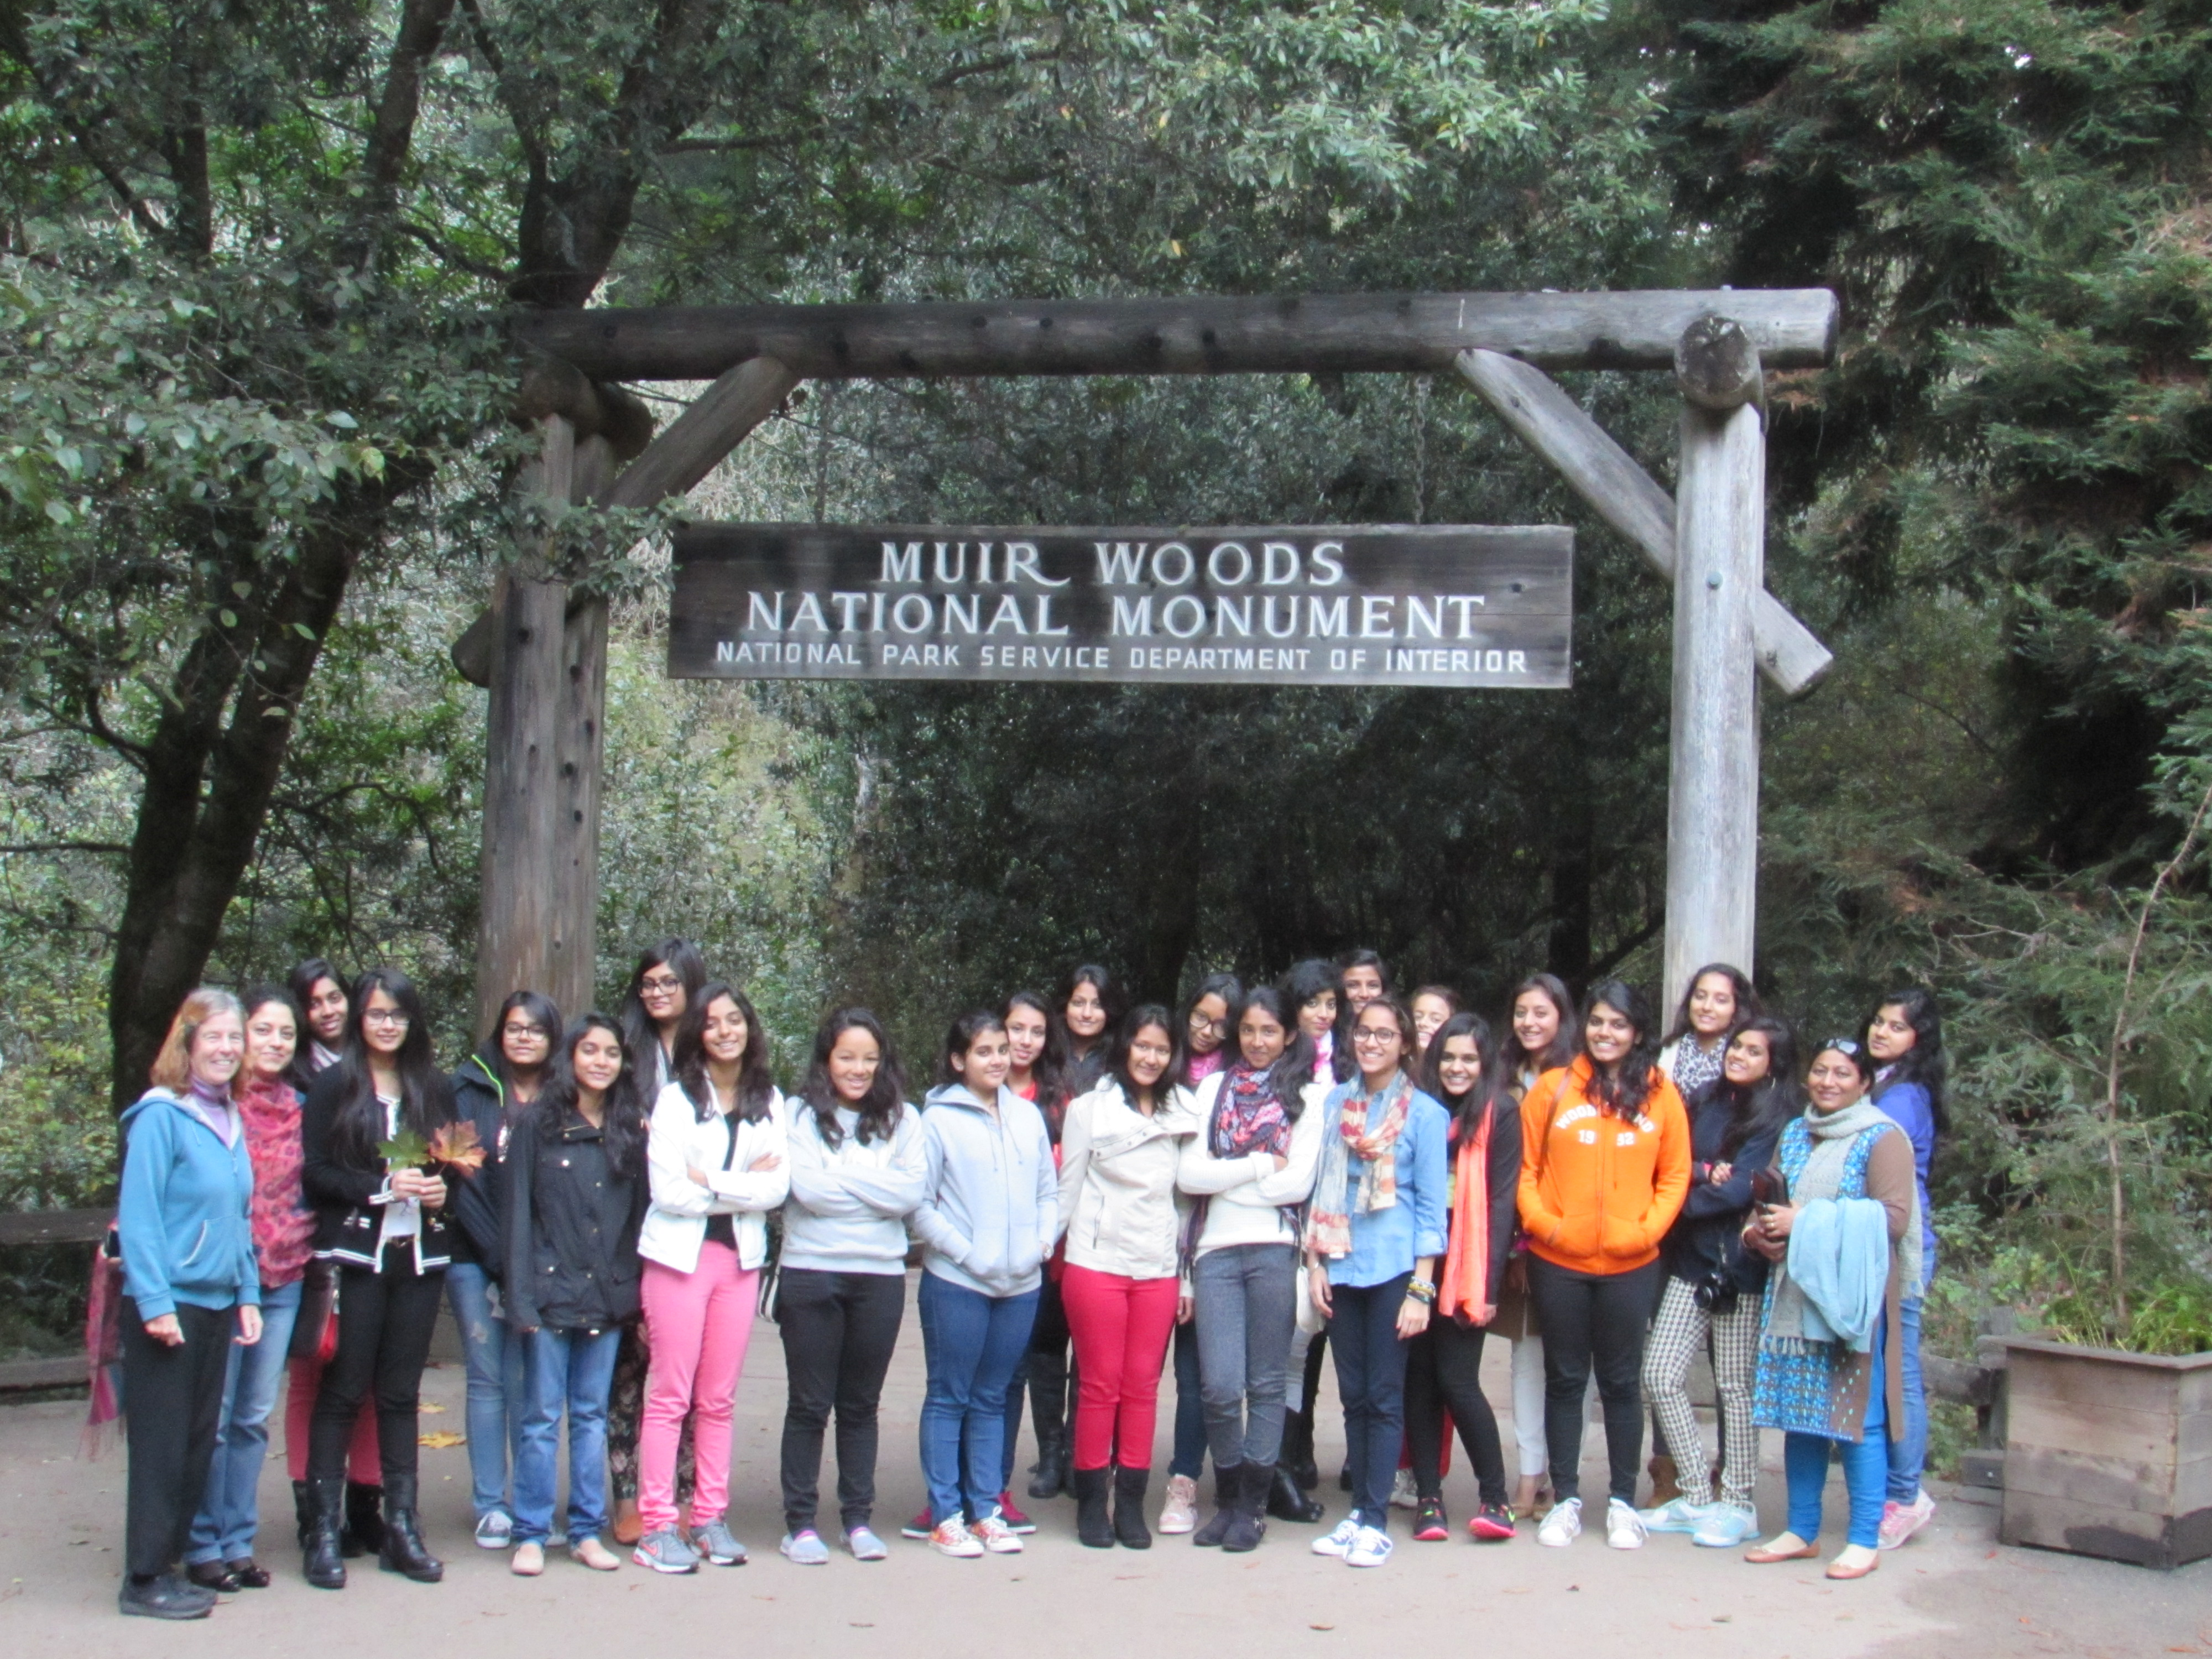 Mayo's Delegation at Muir Woods